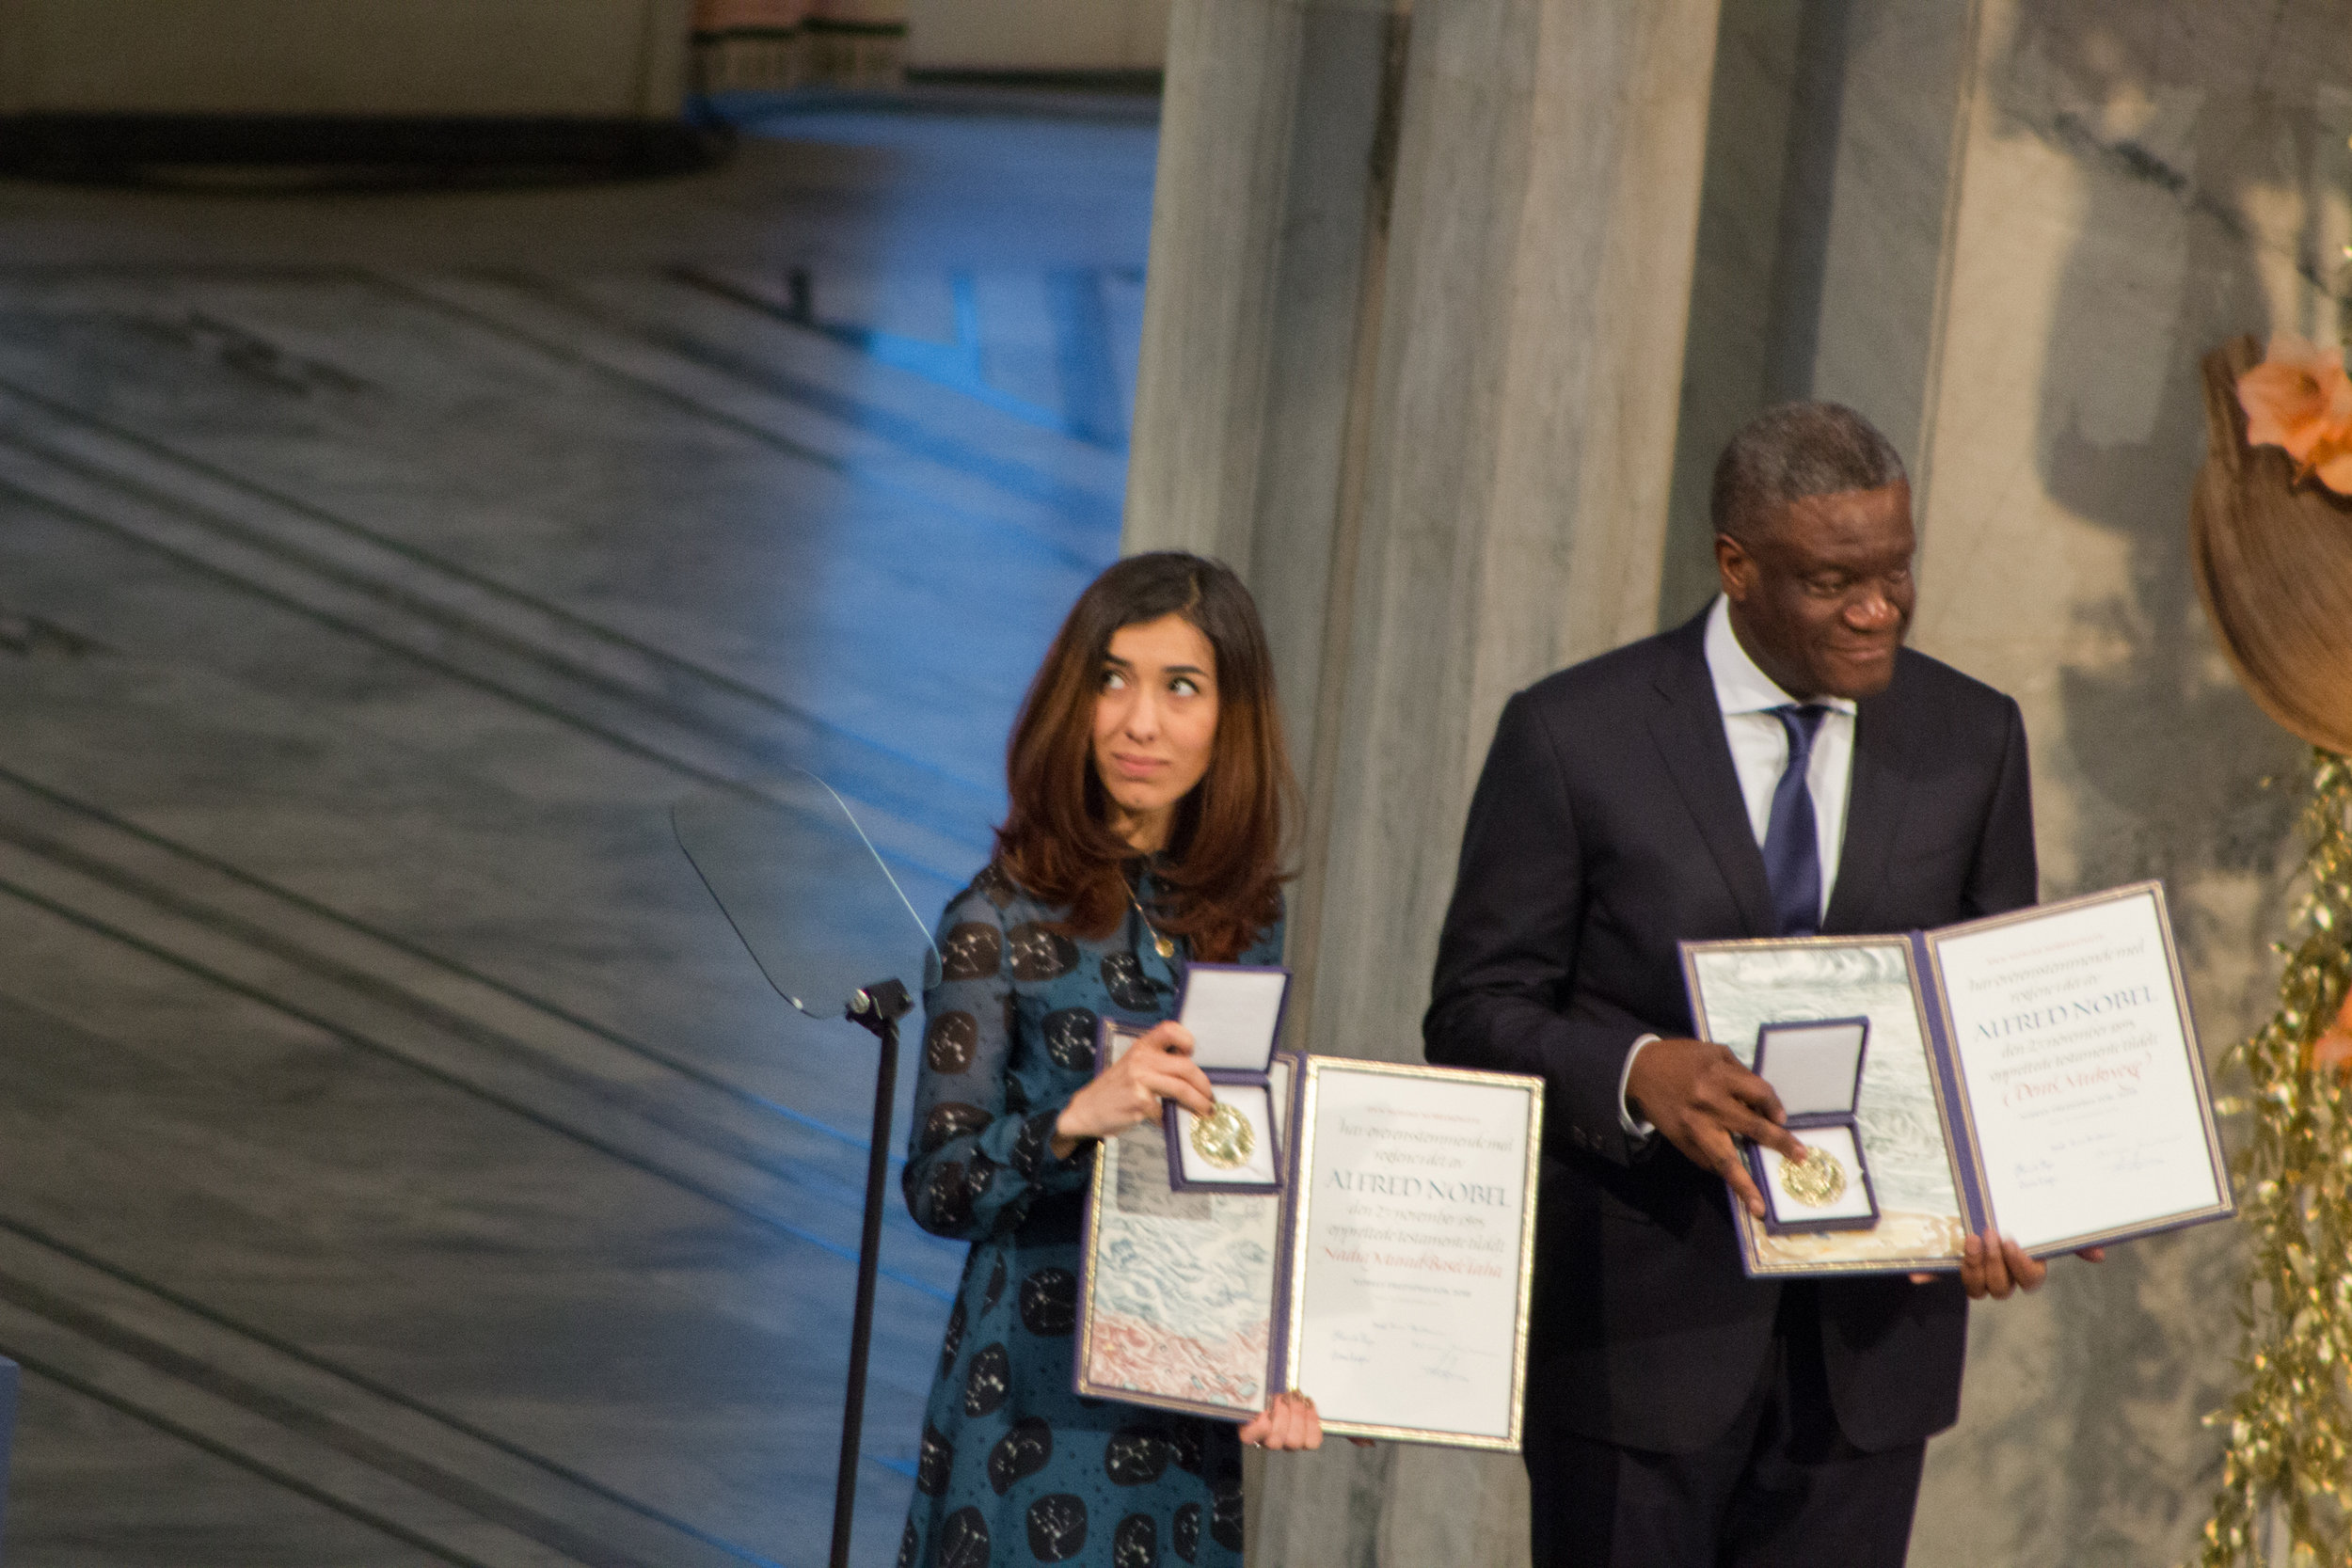 At The Nobel Peace Prize Ceremony